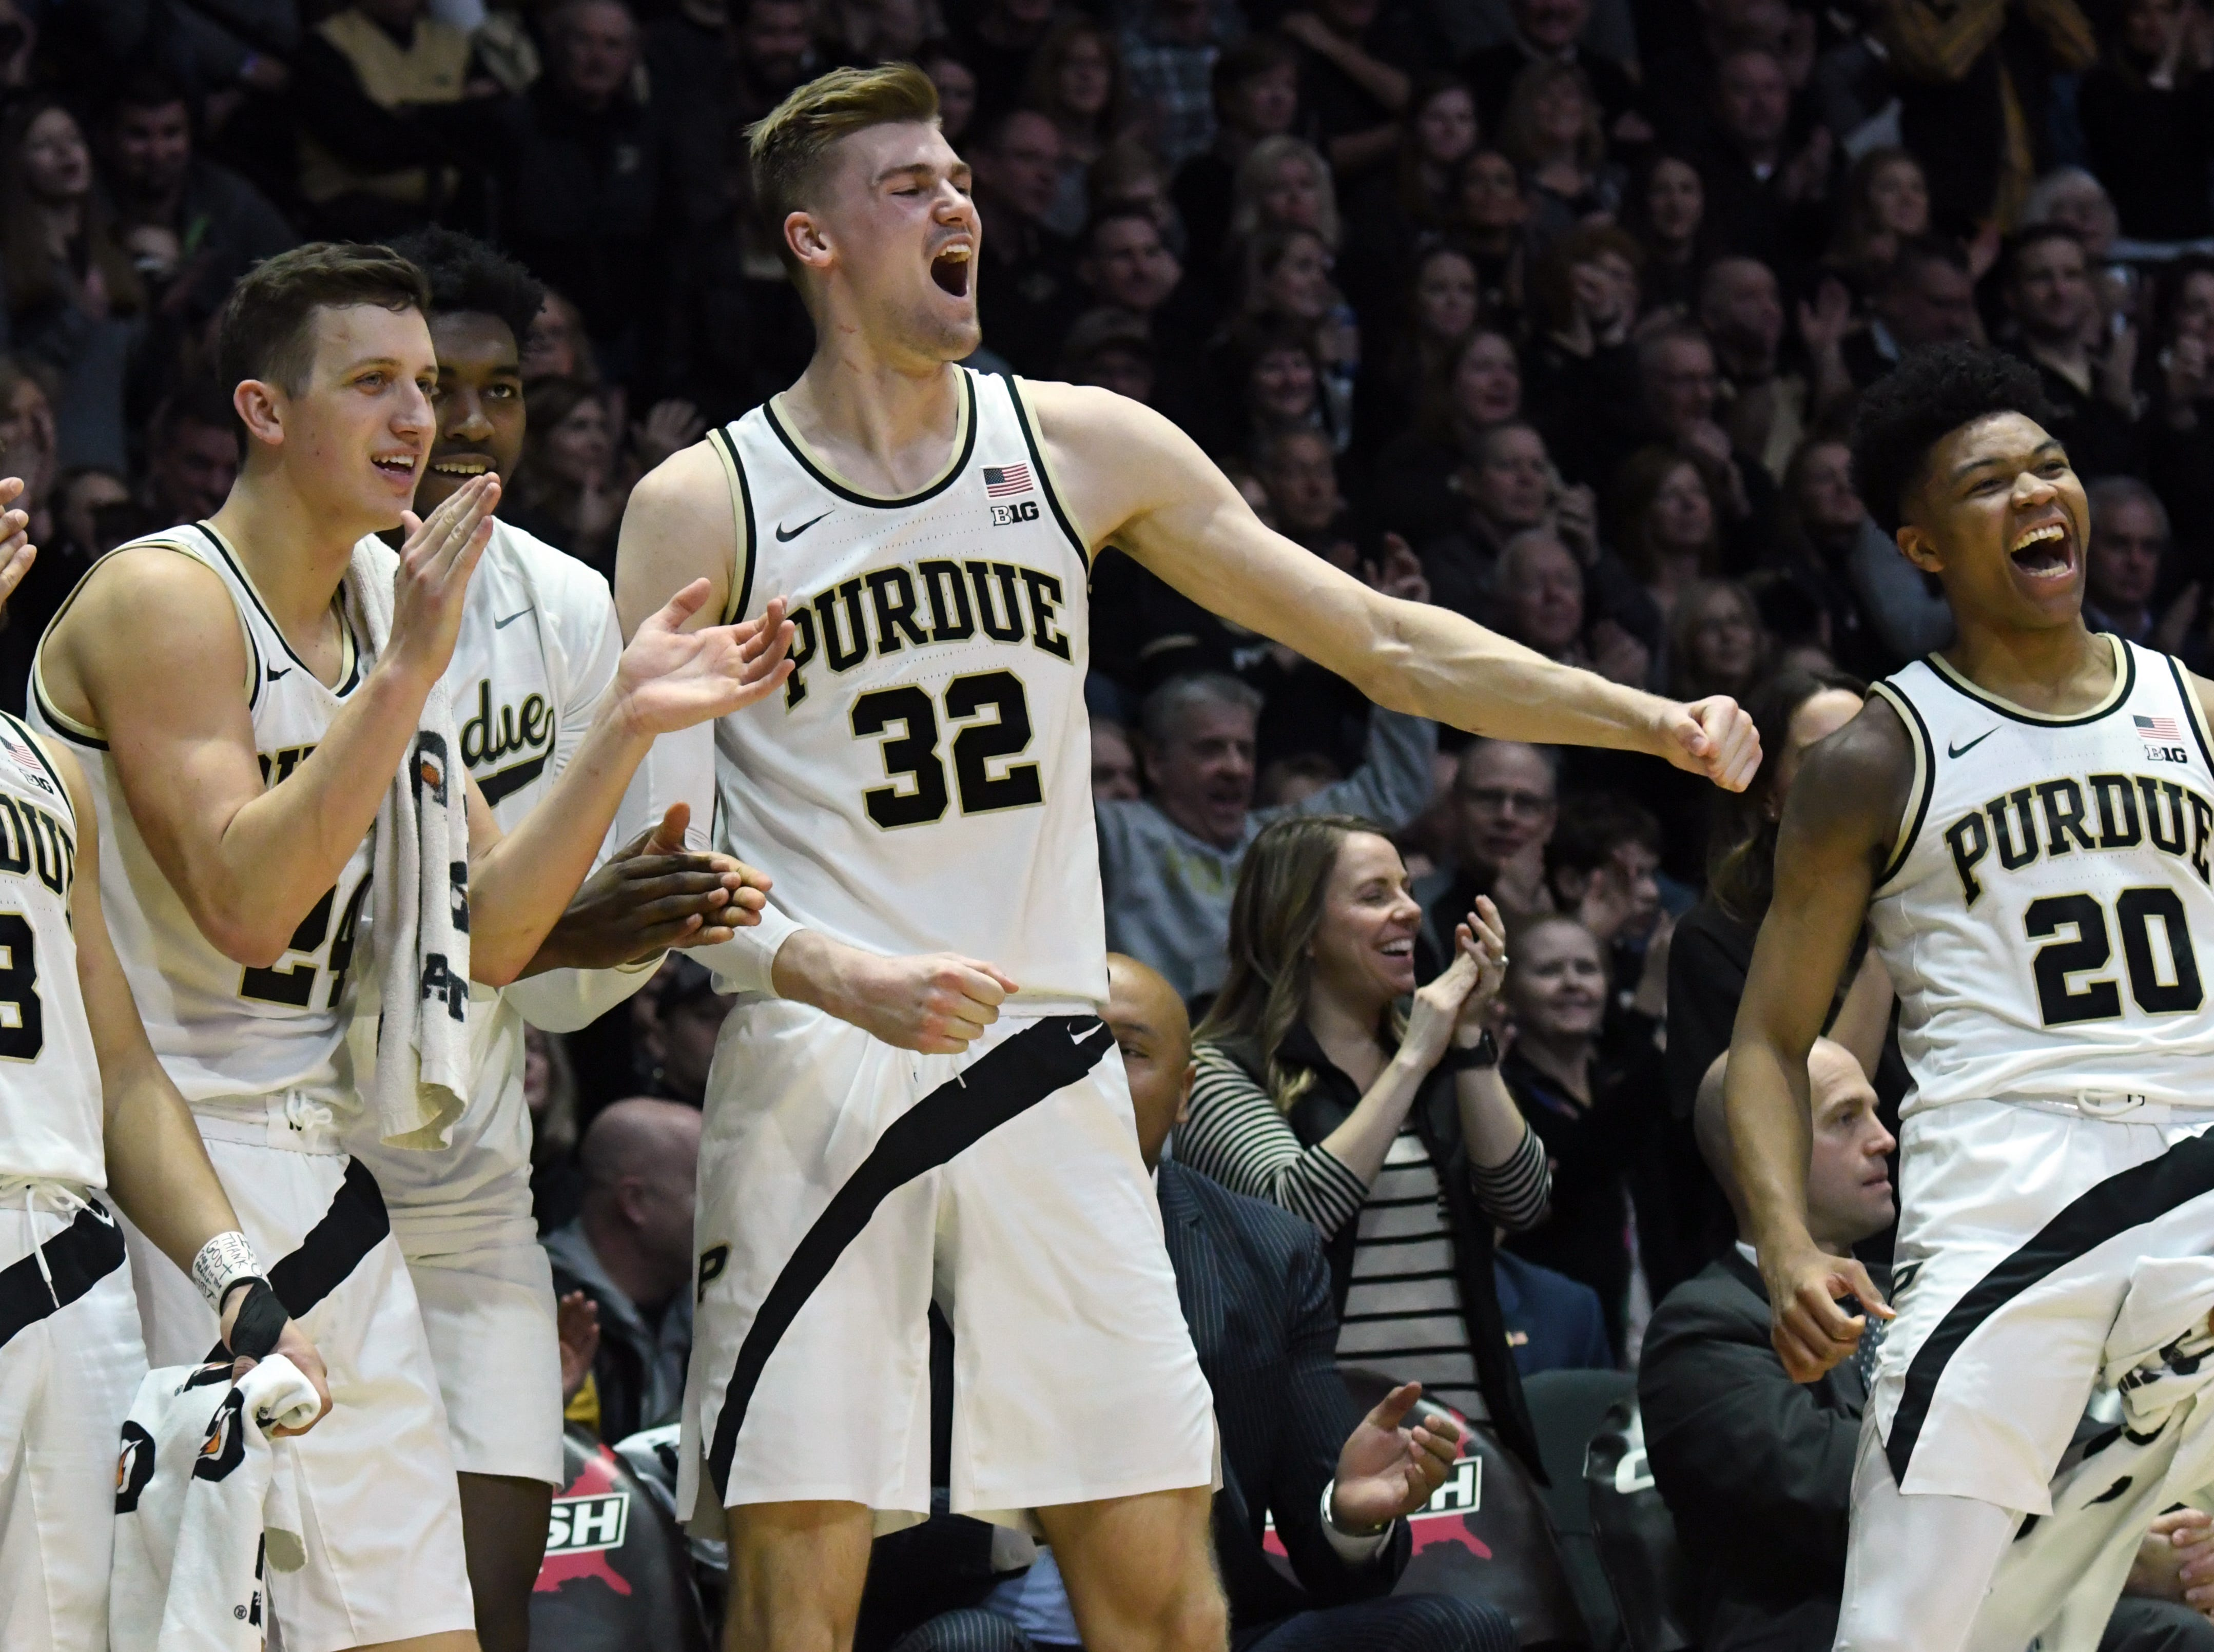 By Frank Oliver for the Journal and Courier --Purdue's Carsen Edwards, Grady Eifert, Trevion Williams, Matt Haarms and Nojel Eastern, from left, react to a three-point shot in the second half against Ohio State on March 2, 2019 in West Lafayette. Purdue defeated the Buckeyes 86-51.